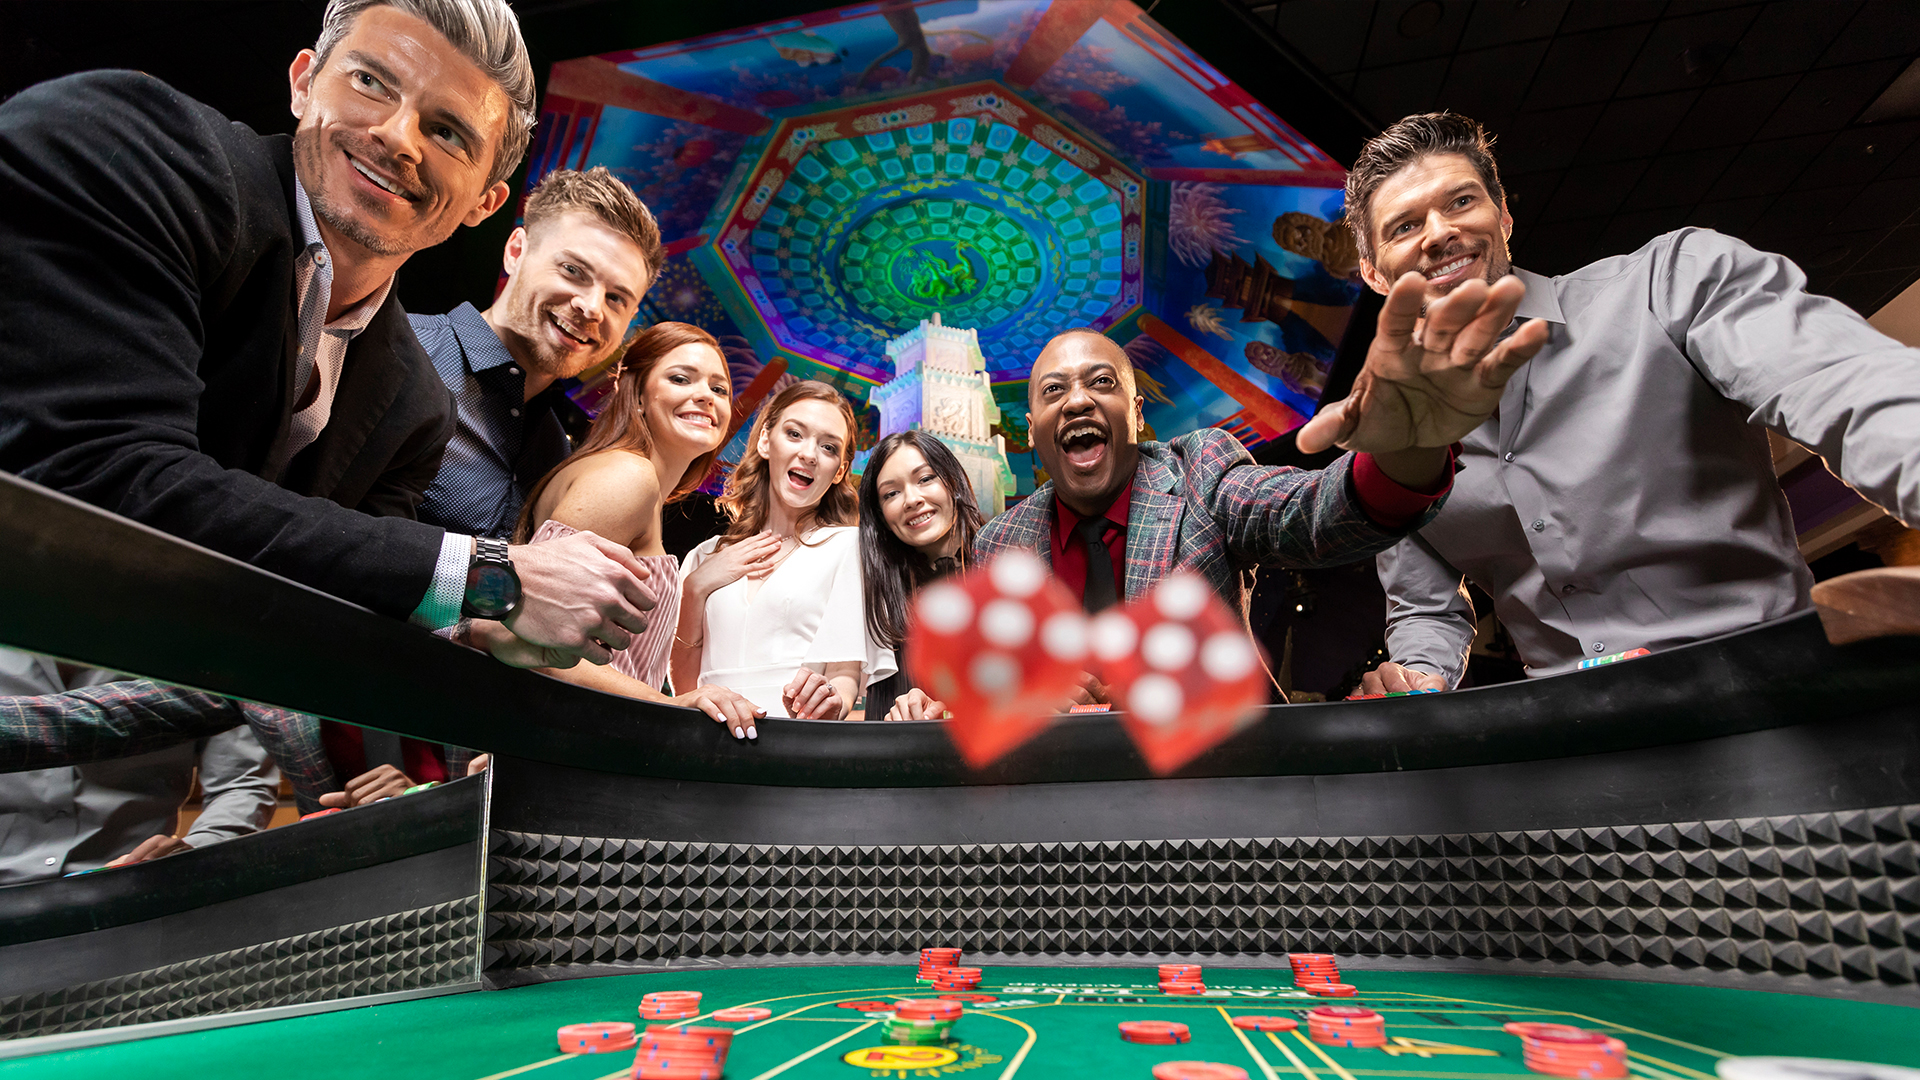 Winning Tips For Playing Online Slots Gambling